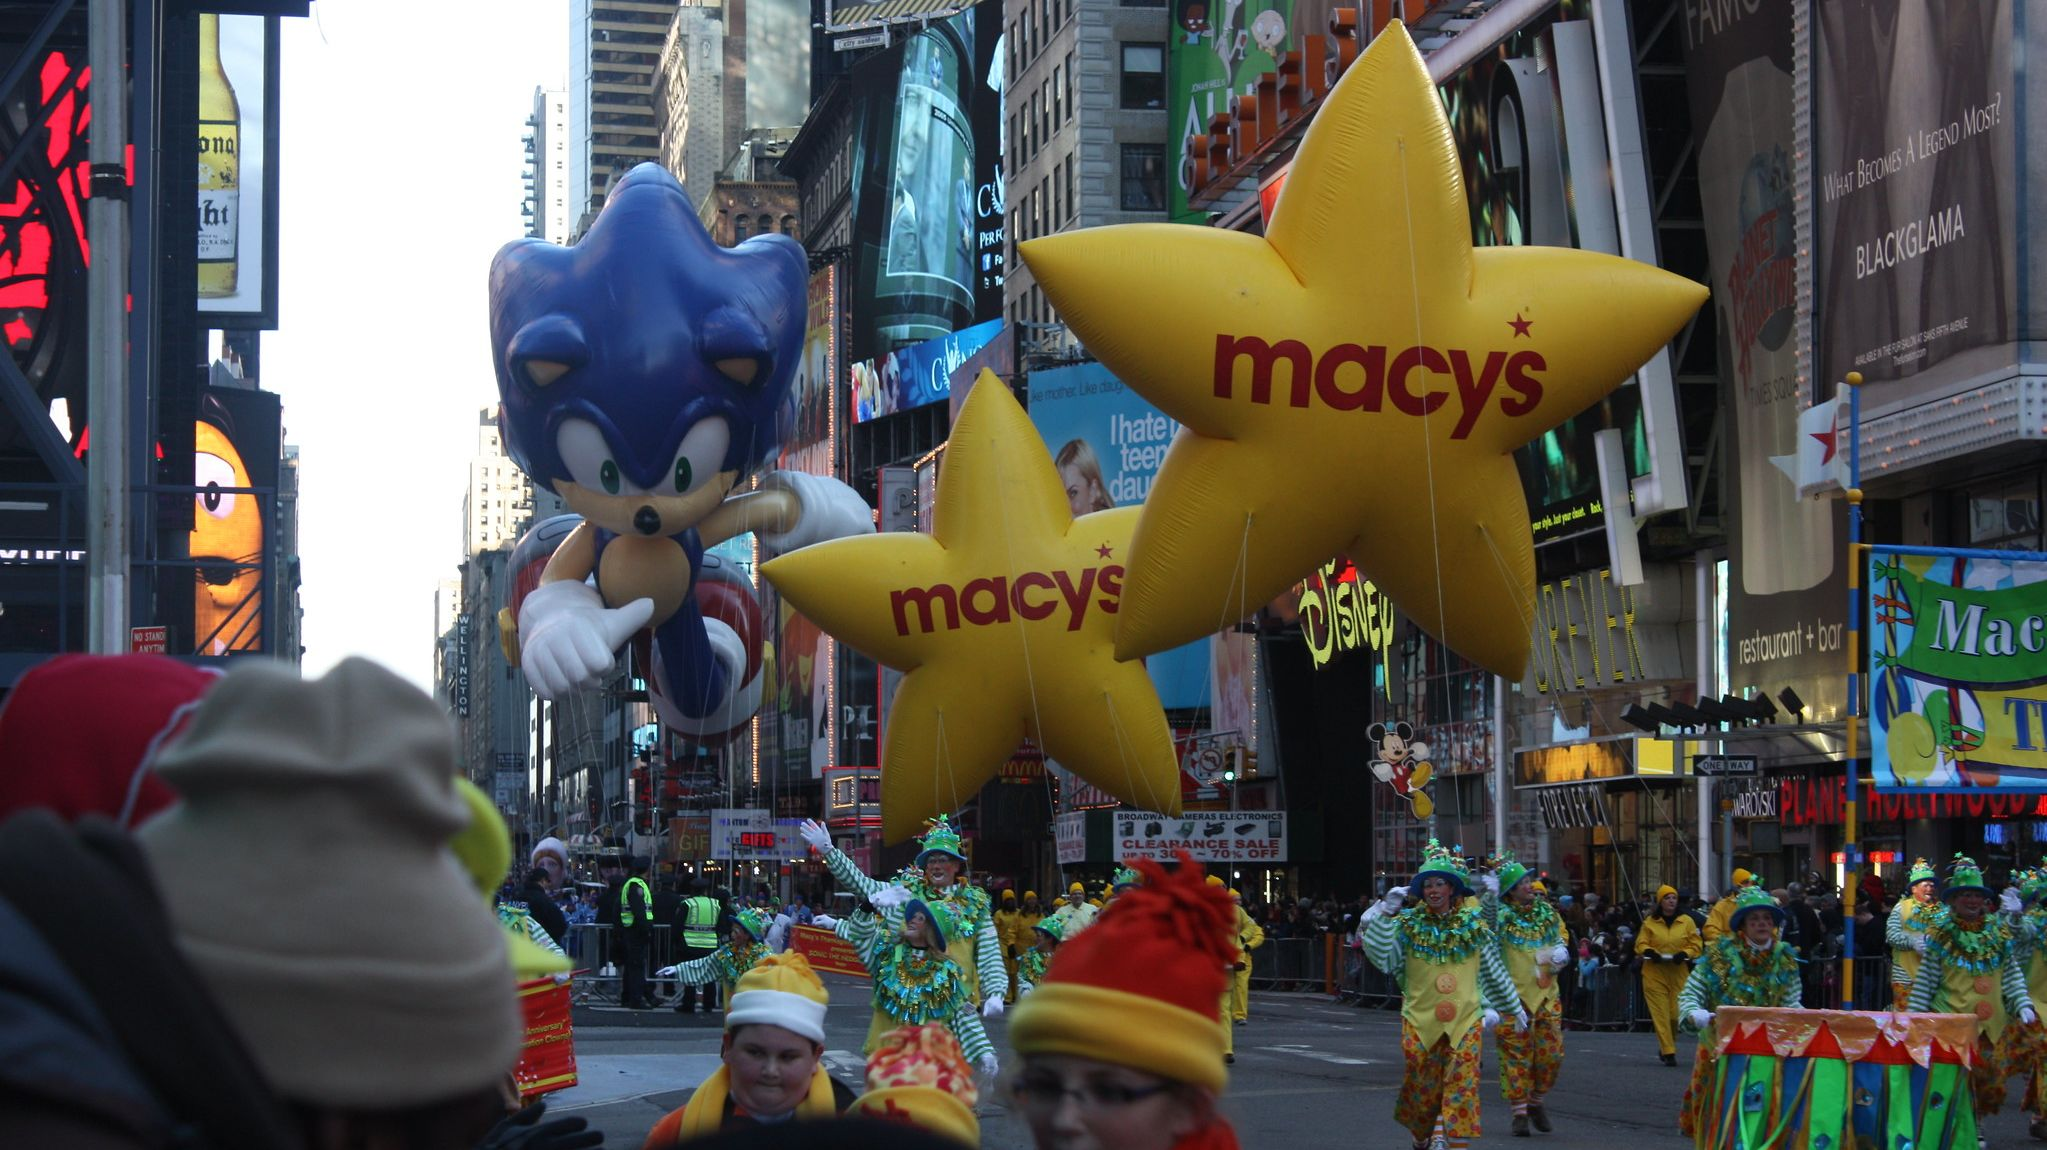 Macy's Thanksgiving Day Parade Balloon Accidents